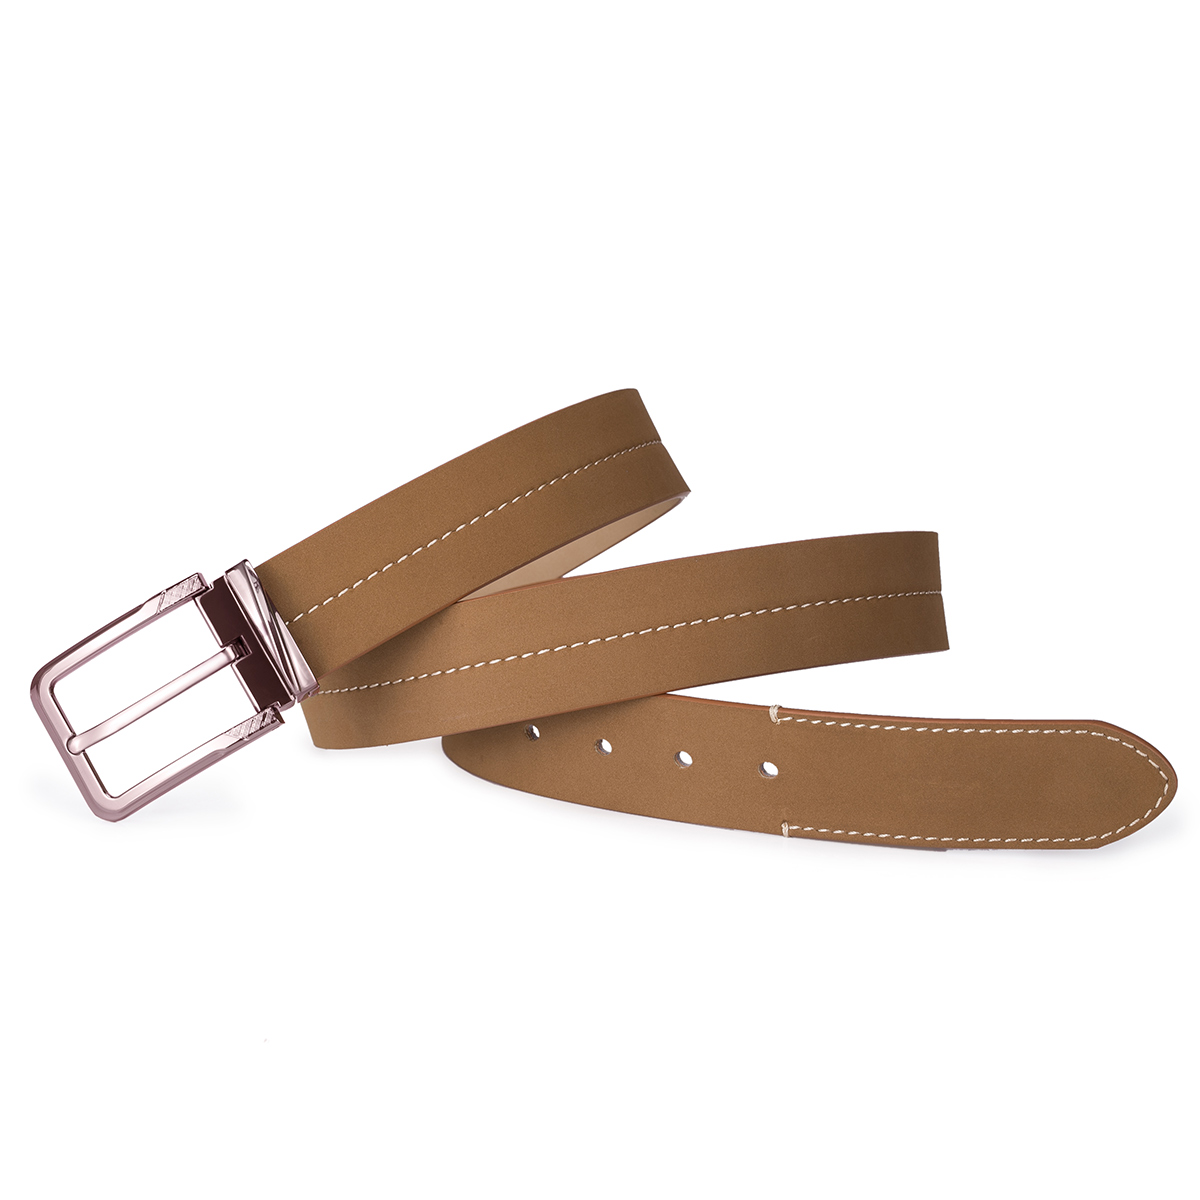 This belt is just what I want. High quality material and fashionable appearance. I saw the material is mainly synthetic leather before I bought it, but when I received and tried it, I found it's surprisingly conformtable and just like genuine leather belt.